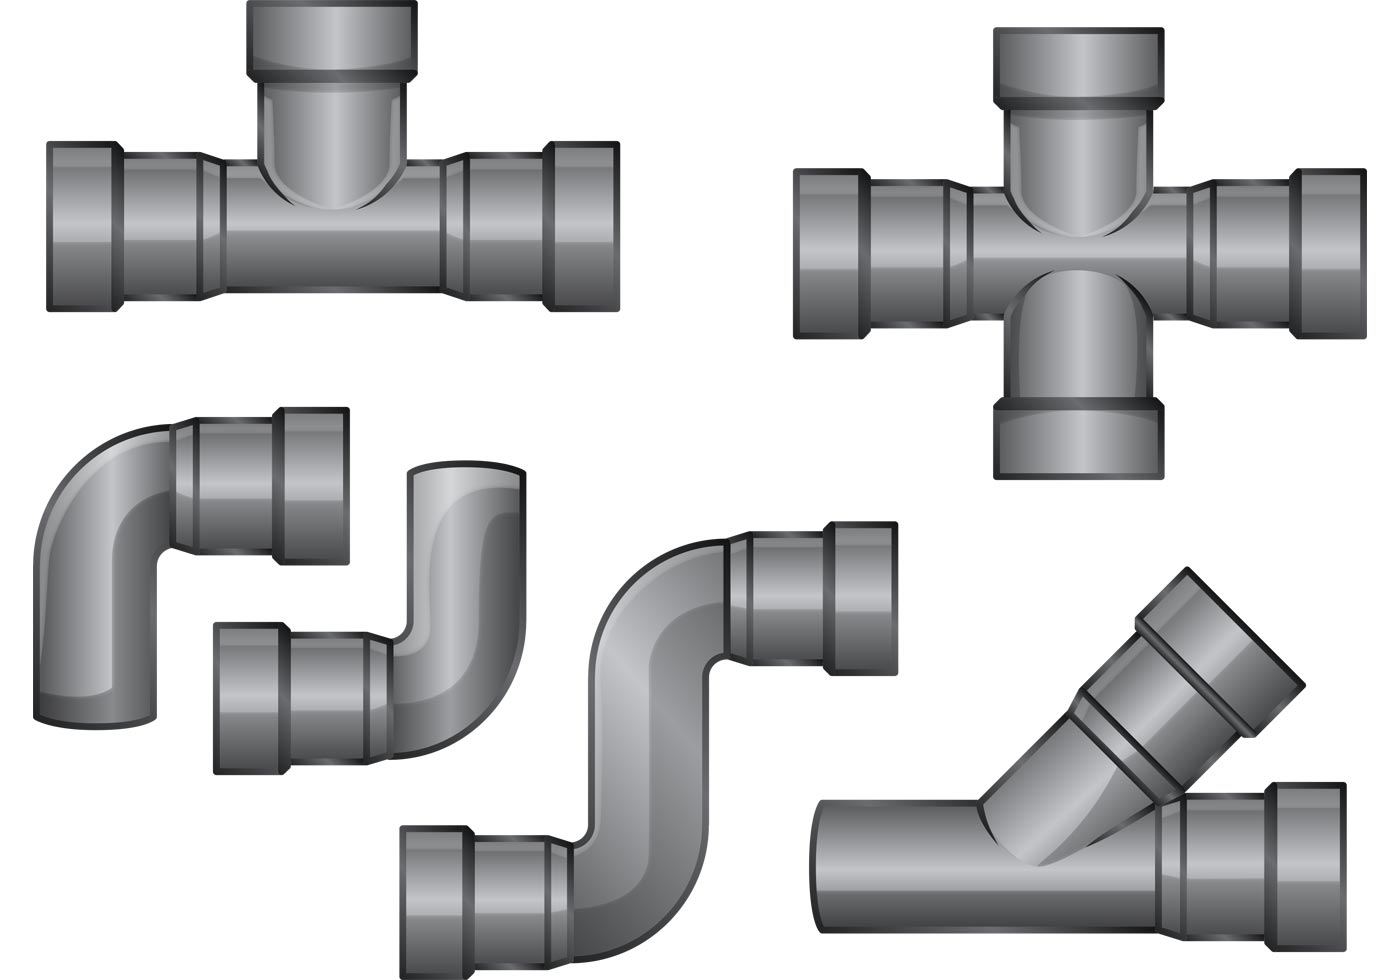 Sewer Pipe Vectors.